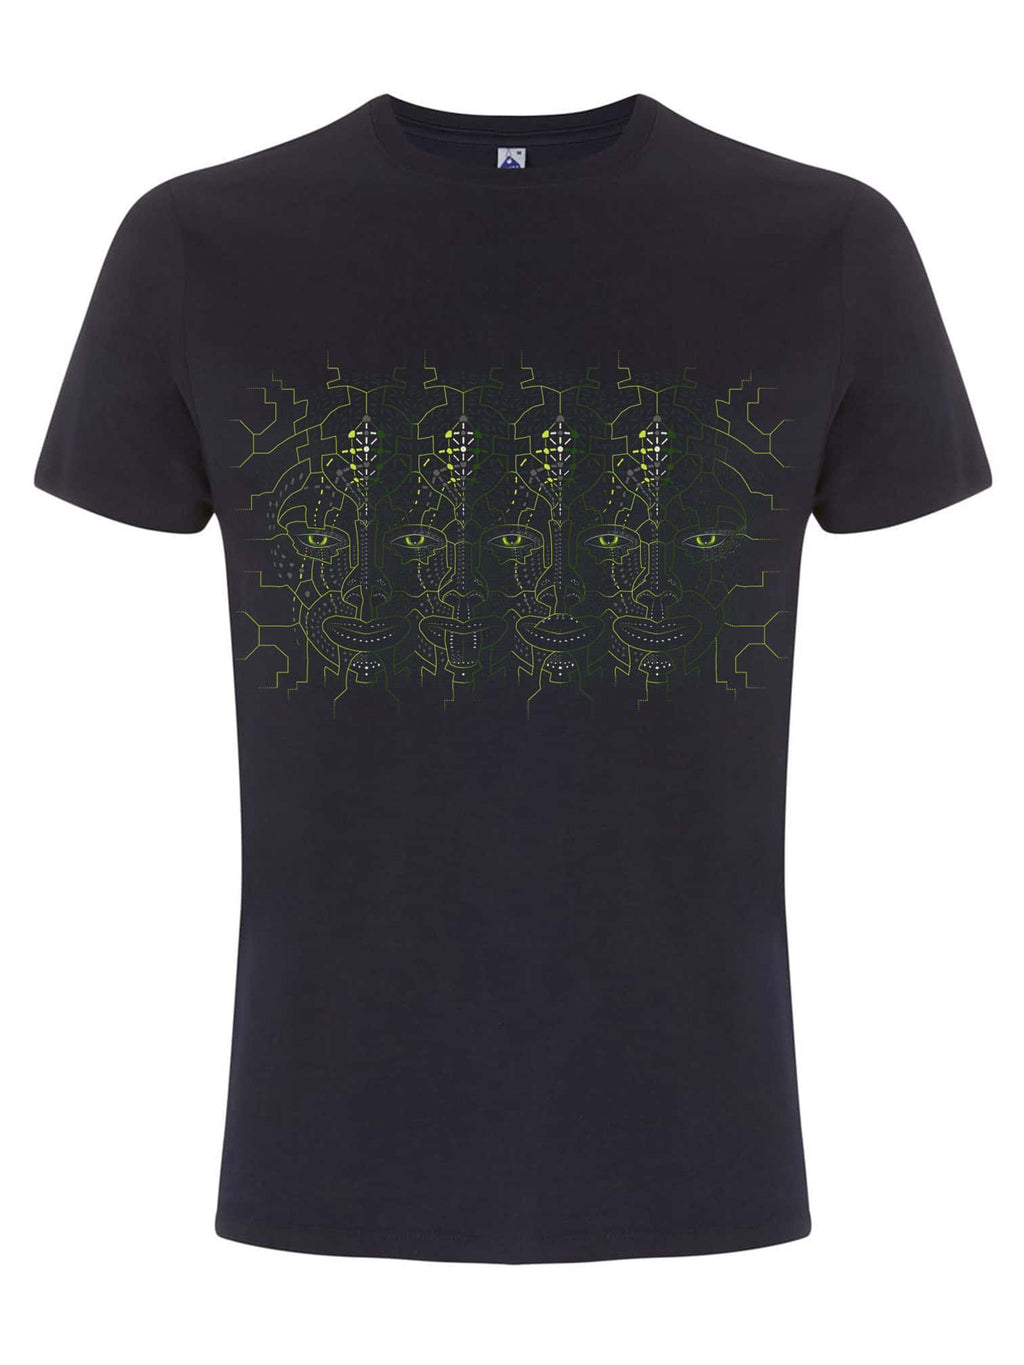 4th Dimension Made To Order Men T-Shirt - Navy Blue